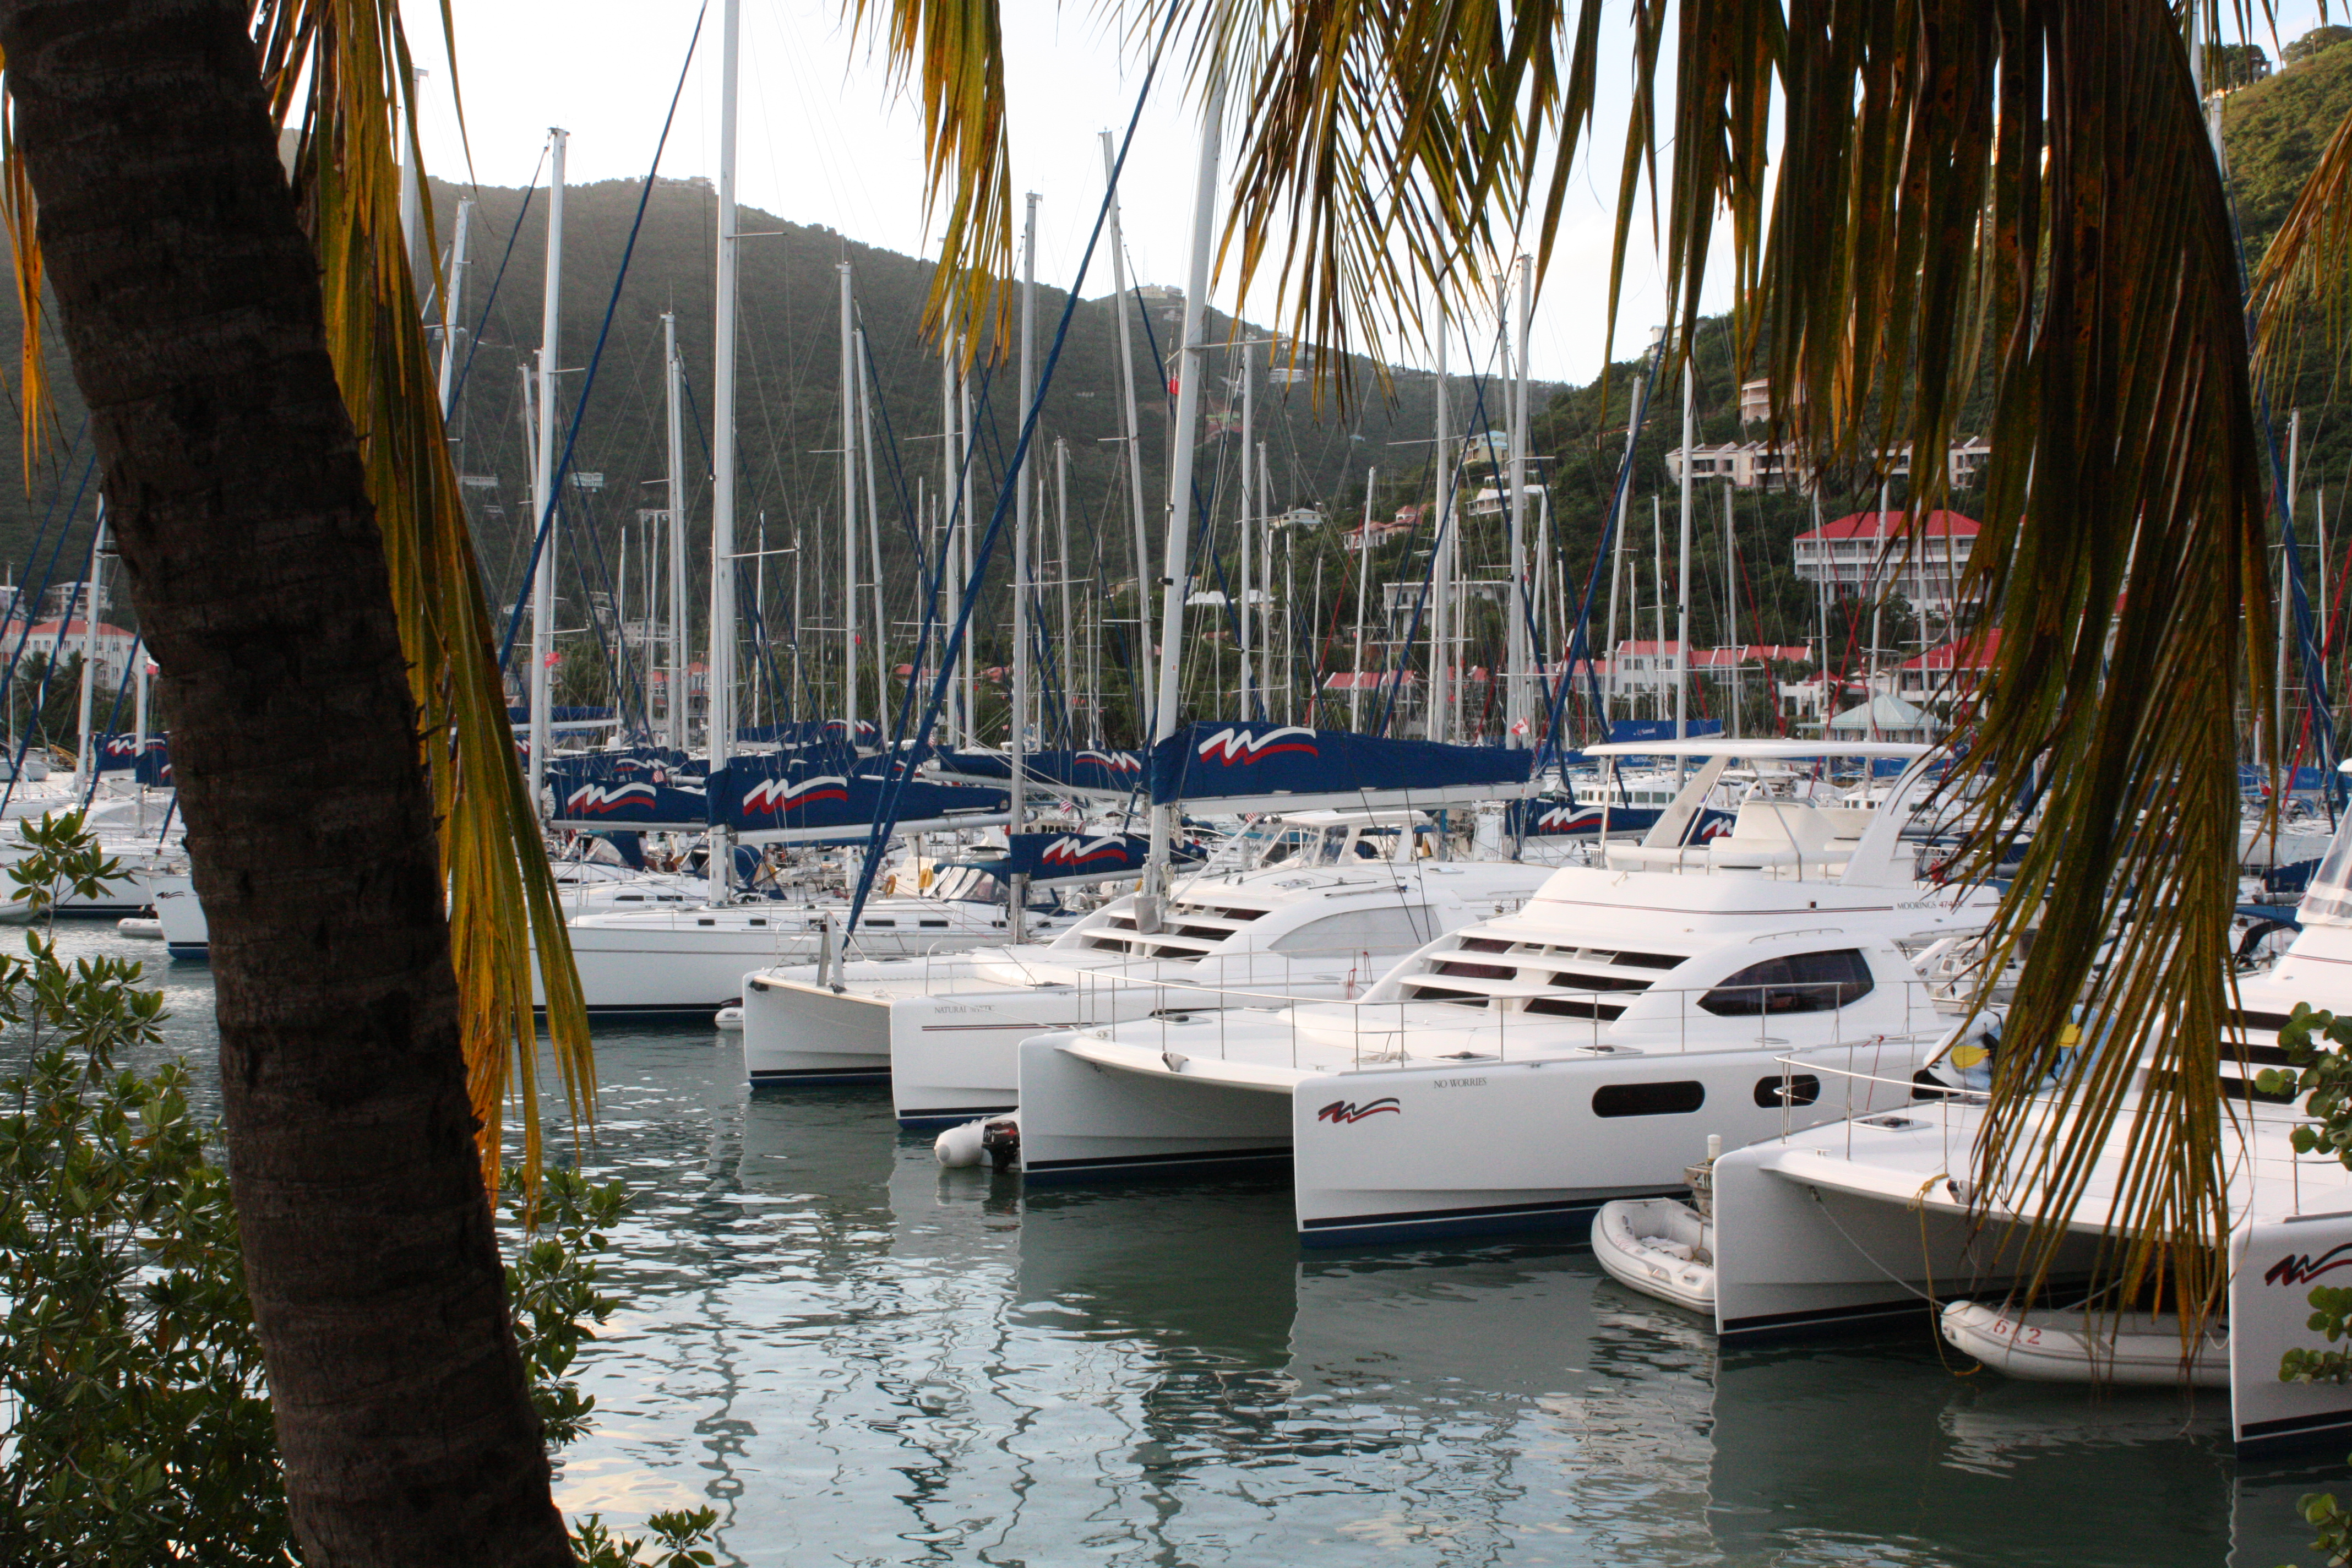 Sunsail 444 for sale - Choosing A Charter Boat Especially The First Time You Go To The Bvi Is Really Hard We Wrote Up A List Of All The Things You Should Consider When Choosing